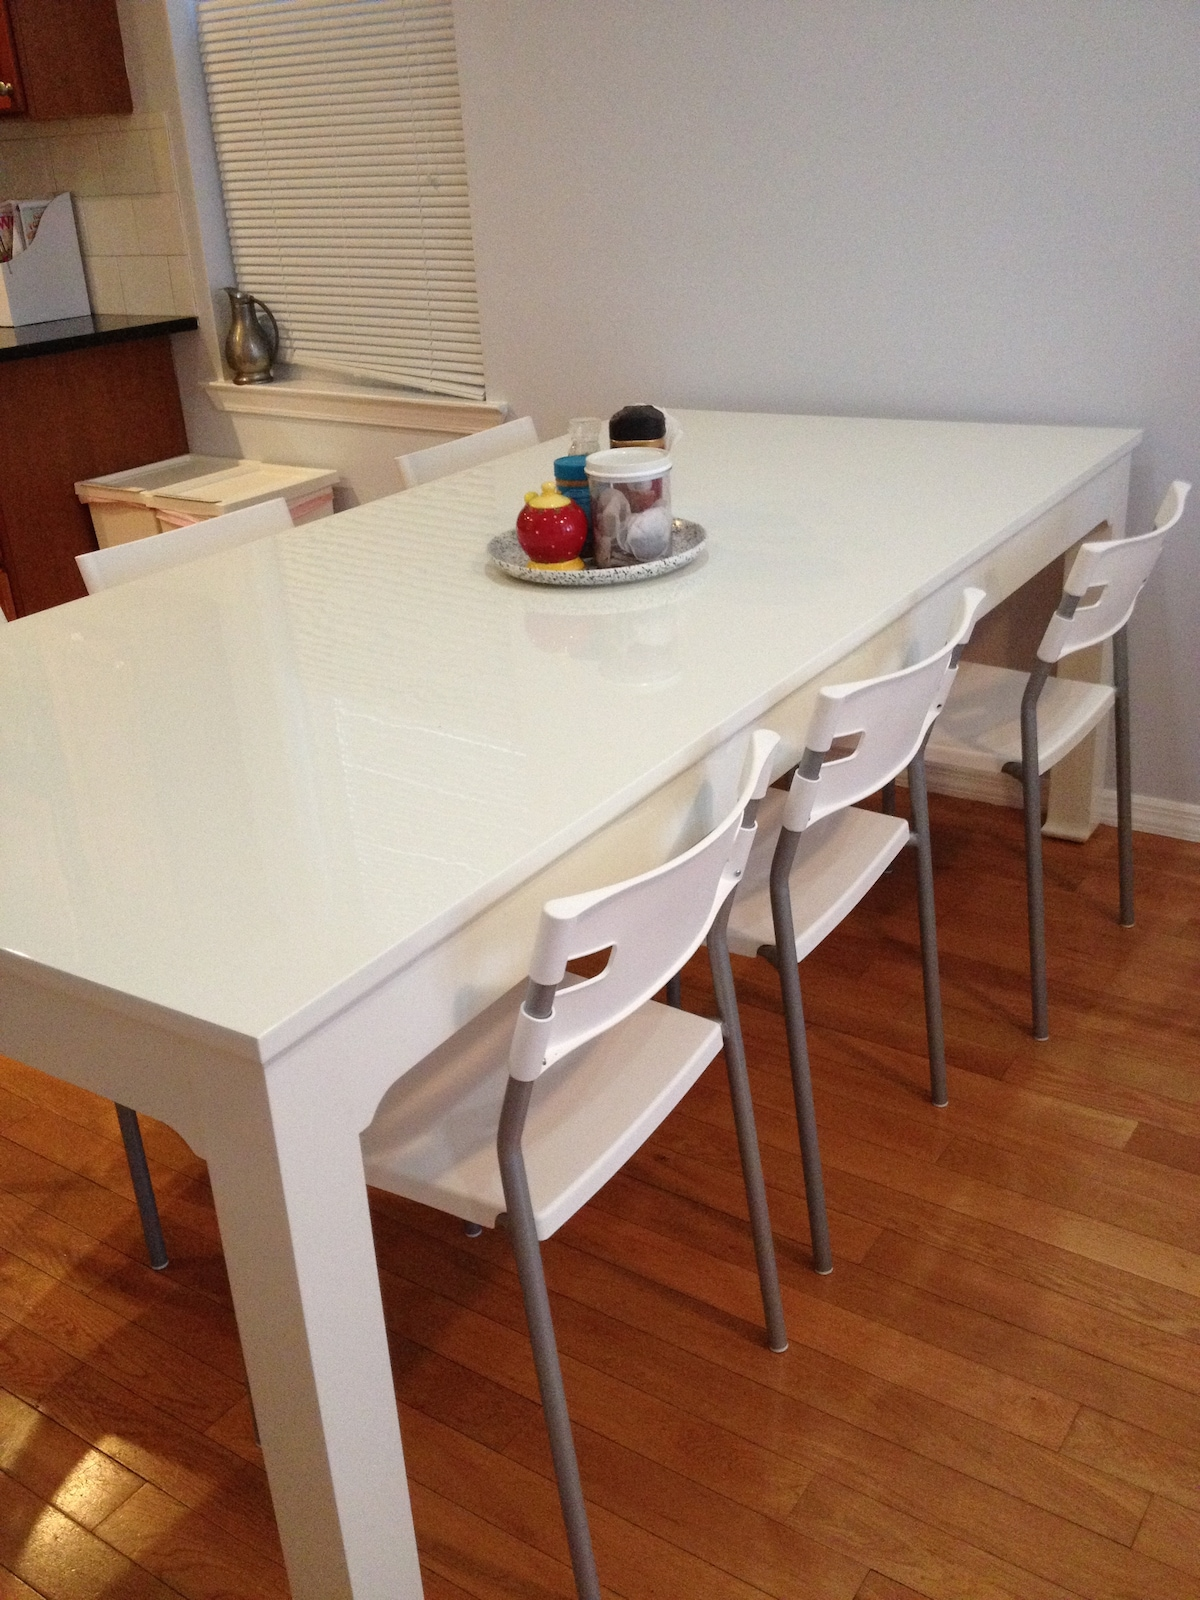 New Jonathan Adler dining room table, seats 8